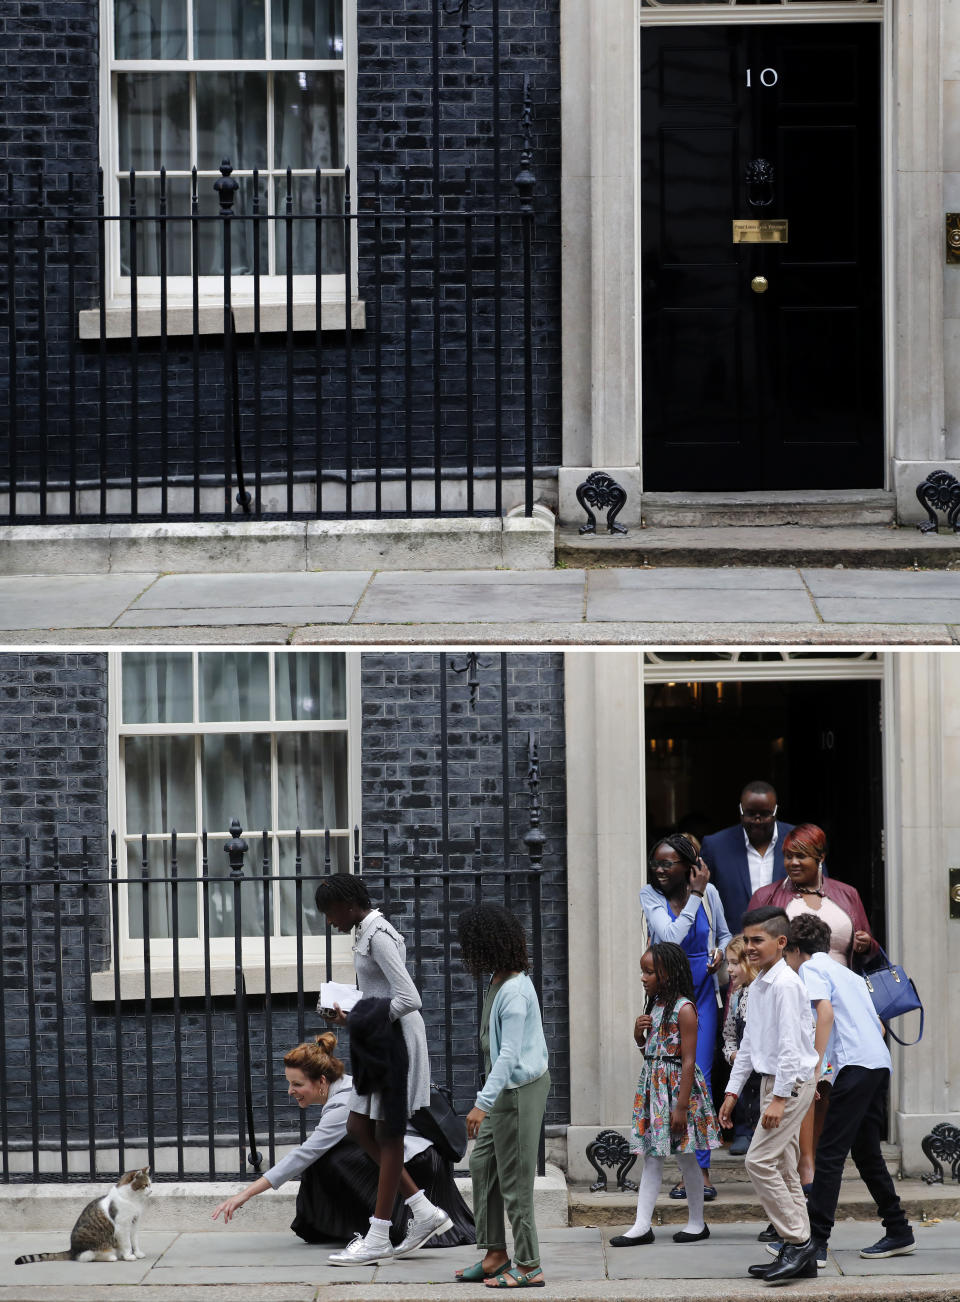 A combo of images showing school children approaching Downing Street chief mouser Larry the cat, as they leave after a scheduled meeting with Britain's Prime Minister Boris Johnson at 10 Downing Street in London on Friday, Aug. 30, 2019 and the empty scene taken from the same angle on Wednesday, April 1, 2020. (AP Photo/Frank Augstein)